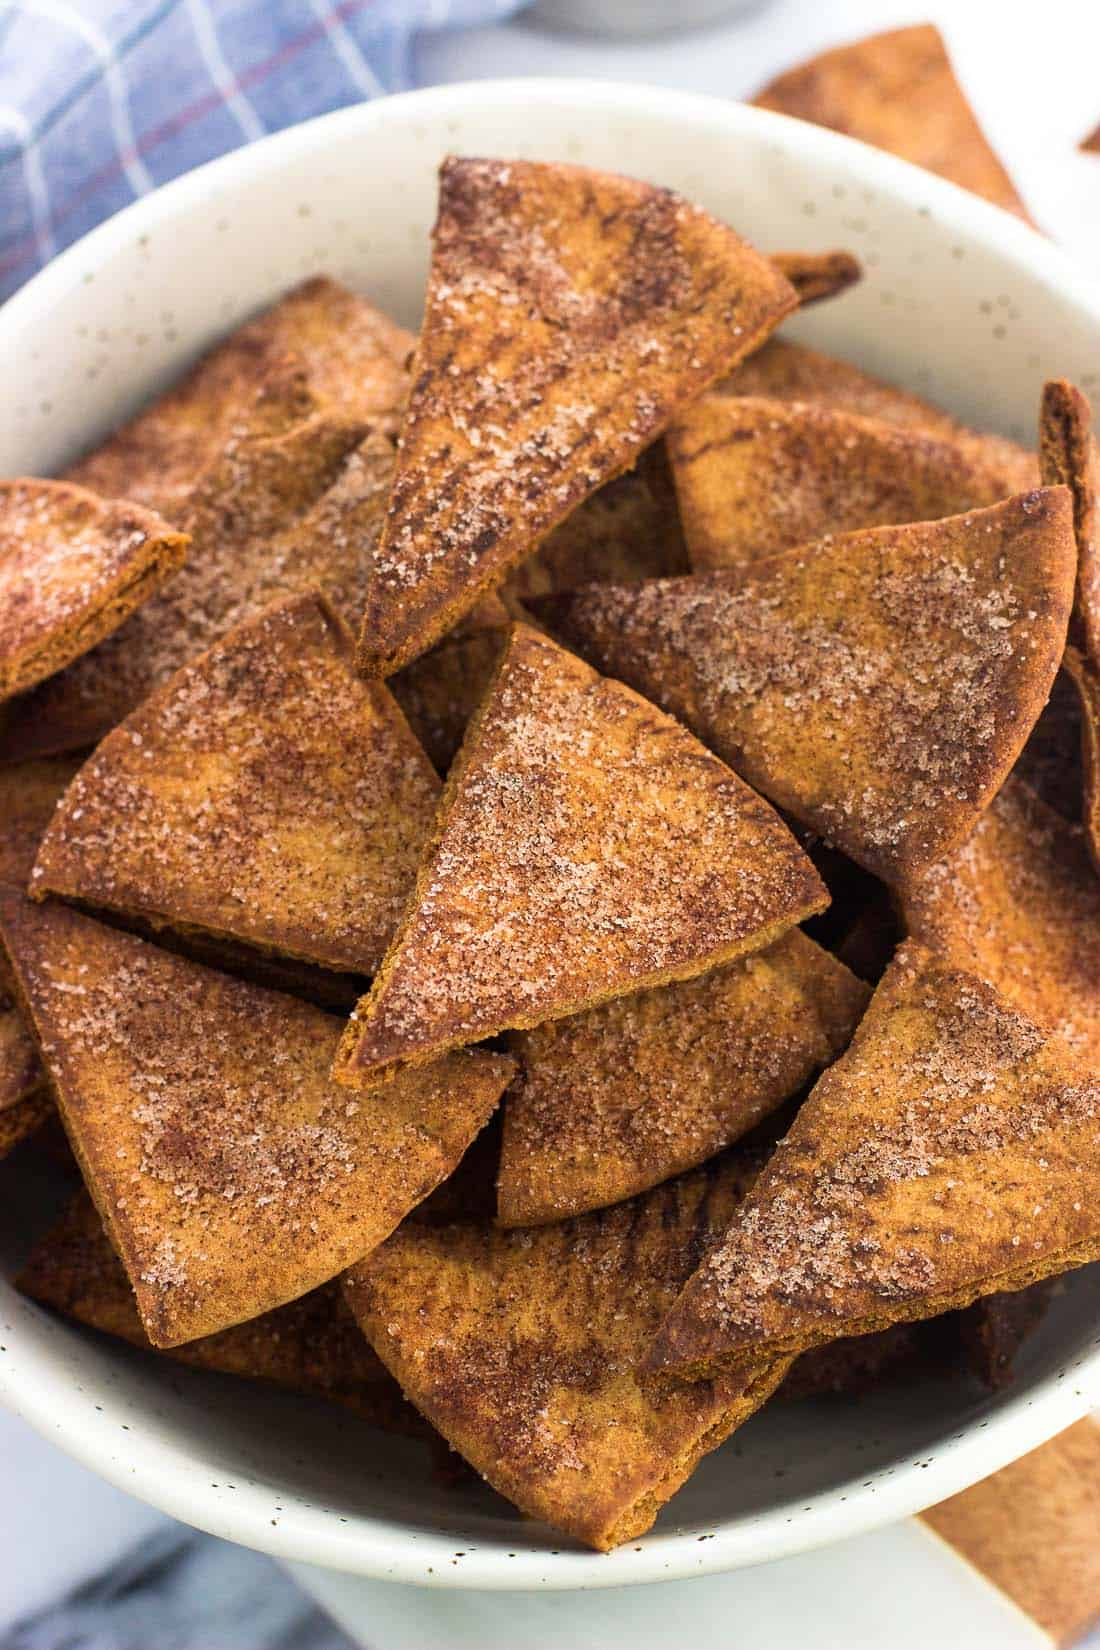 Cinnamon sugar pita chips in a ceramic bowl next to a dish towel